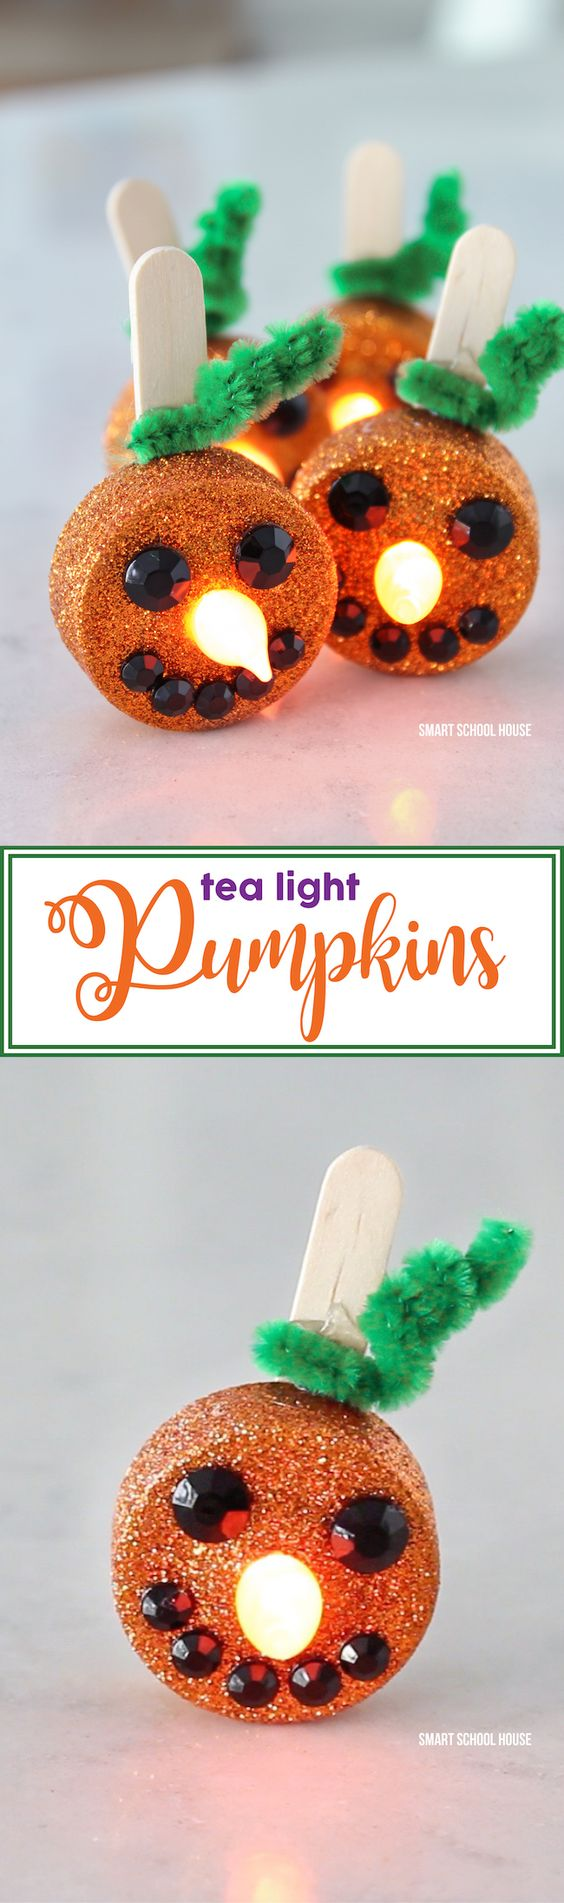 Tea Light Pumpkins.